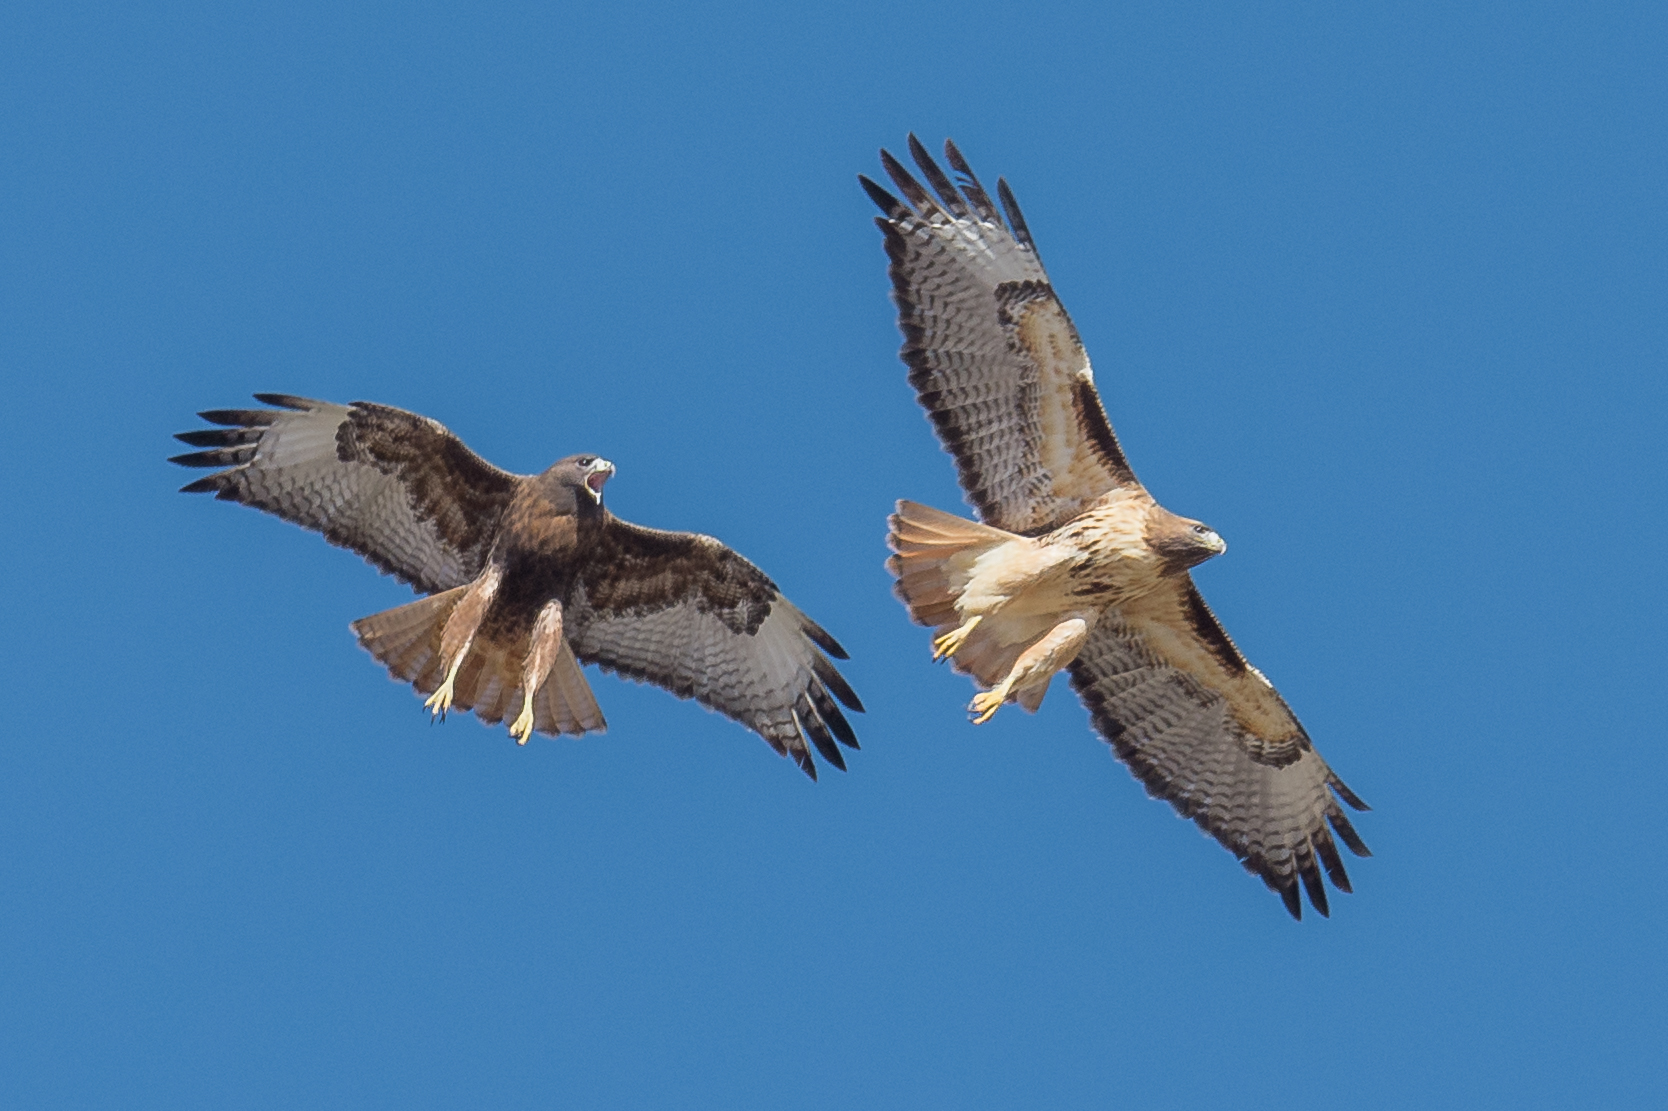 Red-tailed Hawk (Buteo jamaicensis), Rancho San Rafael, WAS (NV), 1-26-2016  This pair of Red-tailed Hawk were in the middle of their mating display. It's not often you can find them displaying close enough to get a decent photo (D7200 with 500mm f/4 lens, 750mm focal length, 1/1250s, f/5, ISO250, +.3EV).